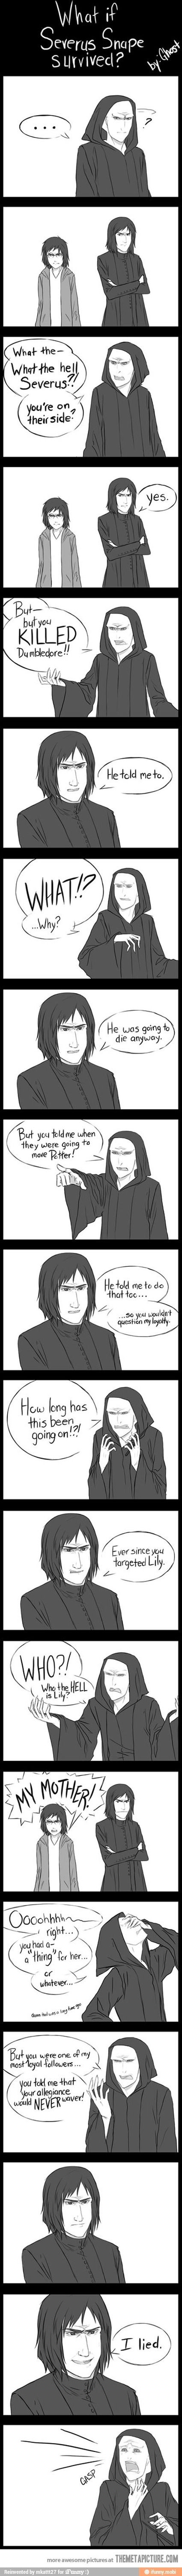 What if Severus Snape Survived? AHAHAHAHAHAHAAHAHAH I wish he had just to pee all over Voldemorts parade. And then that would absolutely prove that love conquered everything. YES. I wish he had survived just to prove that Tom Riddle Jr. was inferior to these kids and men and women who fought for more than he could ever understand. Women's Books, Diet, Fitness, Fashion, Makeup, Relationships - http://amzn.to/2hmeH1Y